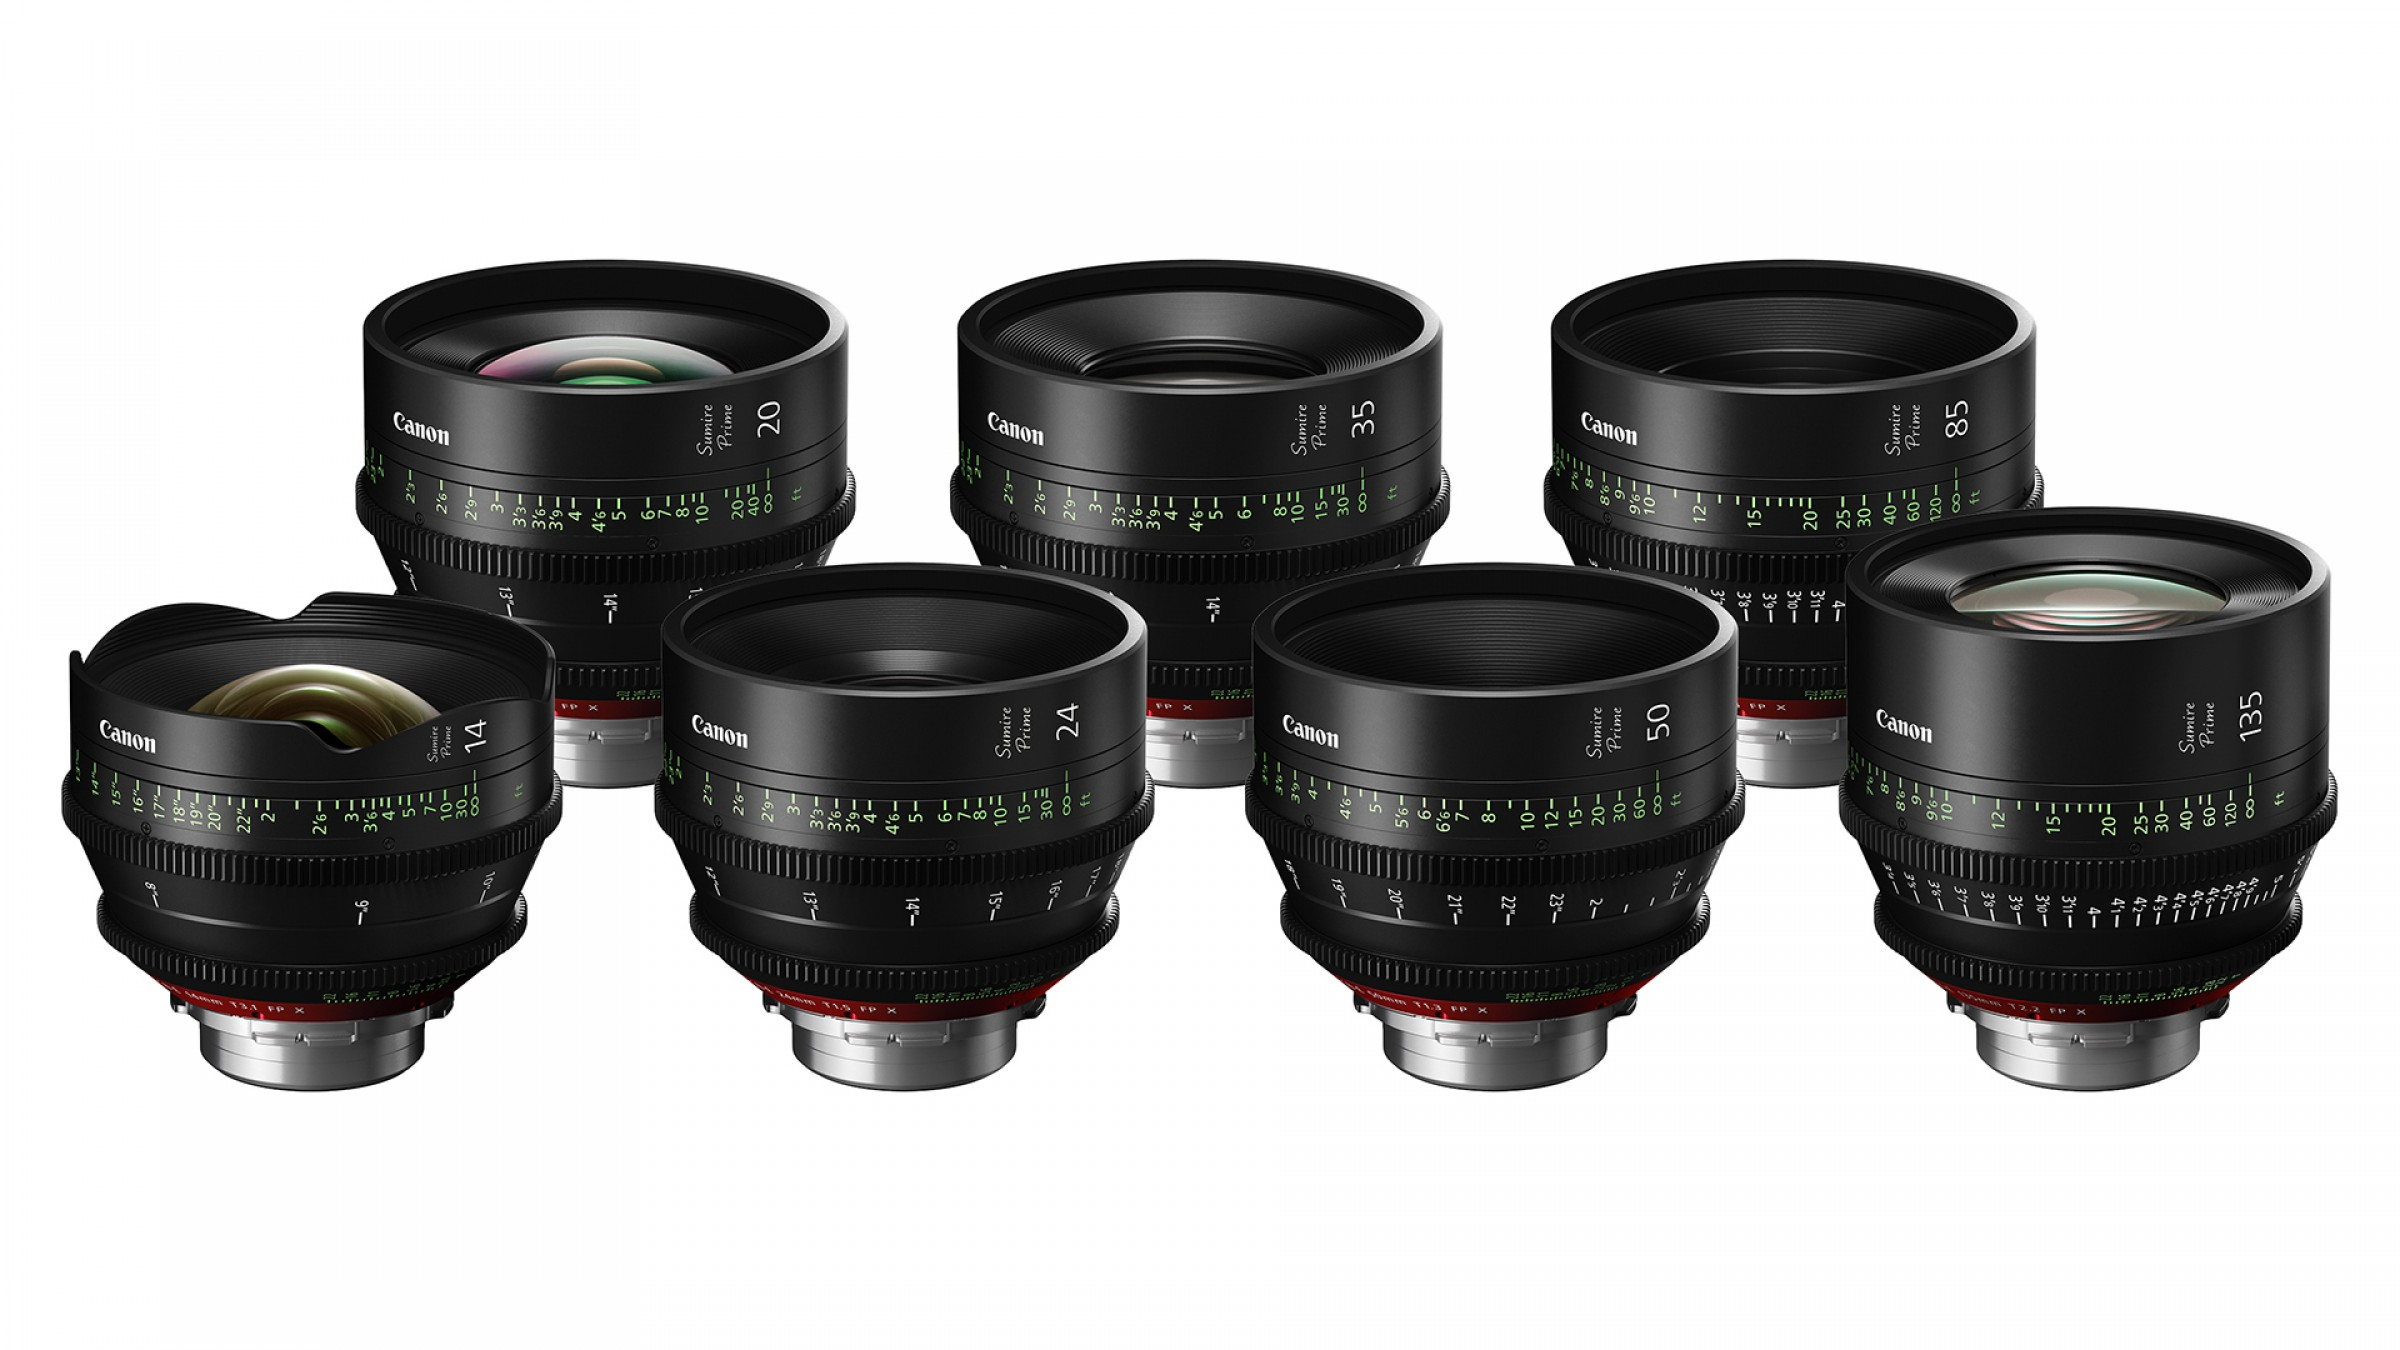 meet canon s new sumire prime pl mount lens collection. Black Bedroom Furniture Sets. Home Design Ideas